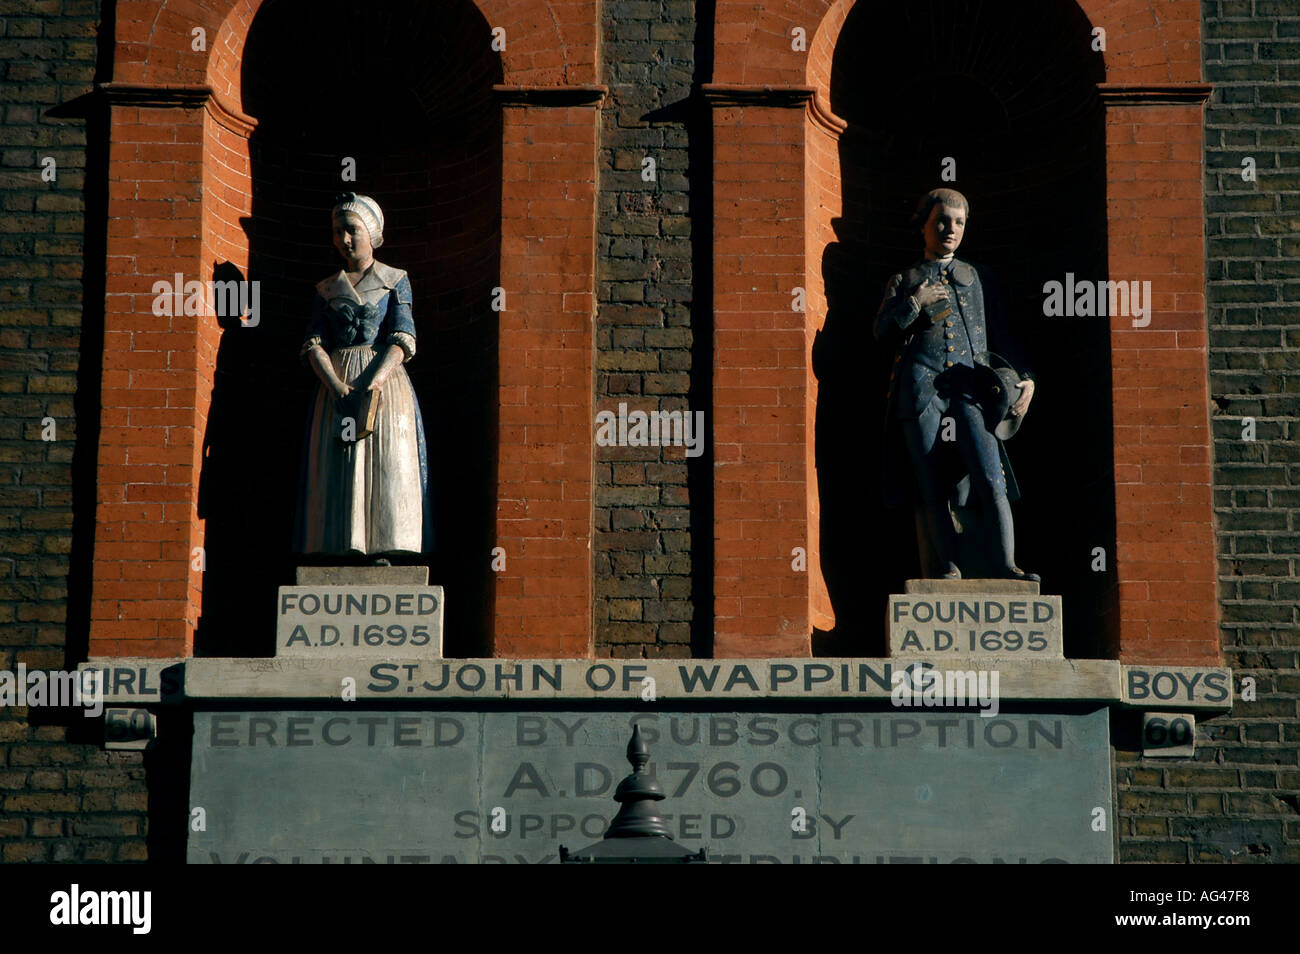 LONDON HISTORY ST JOHN SCHHOL OLD 1695 FOUNDED EDUCATION STATUES REFORM BOY GIRL WAPPING - Stock Image